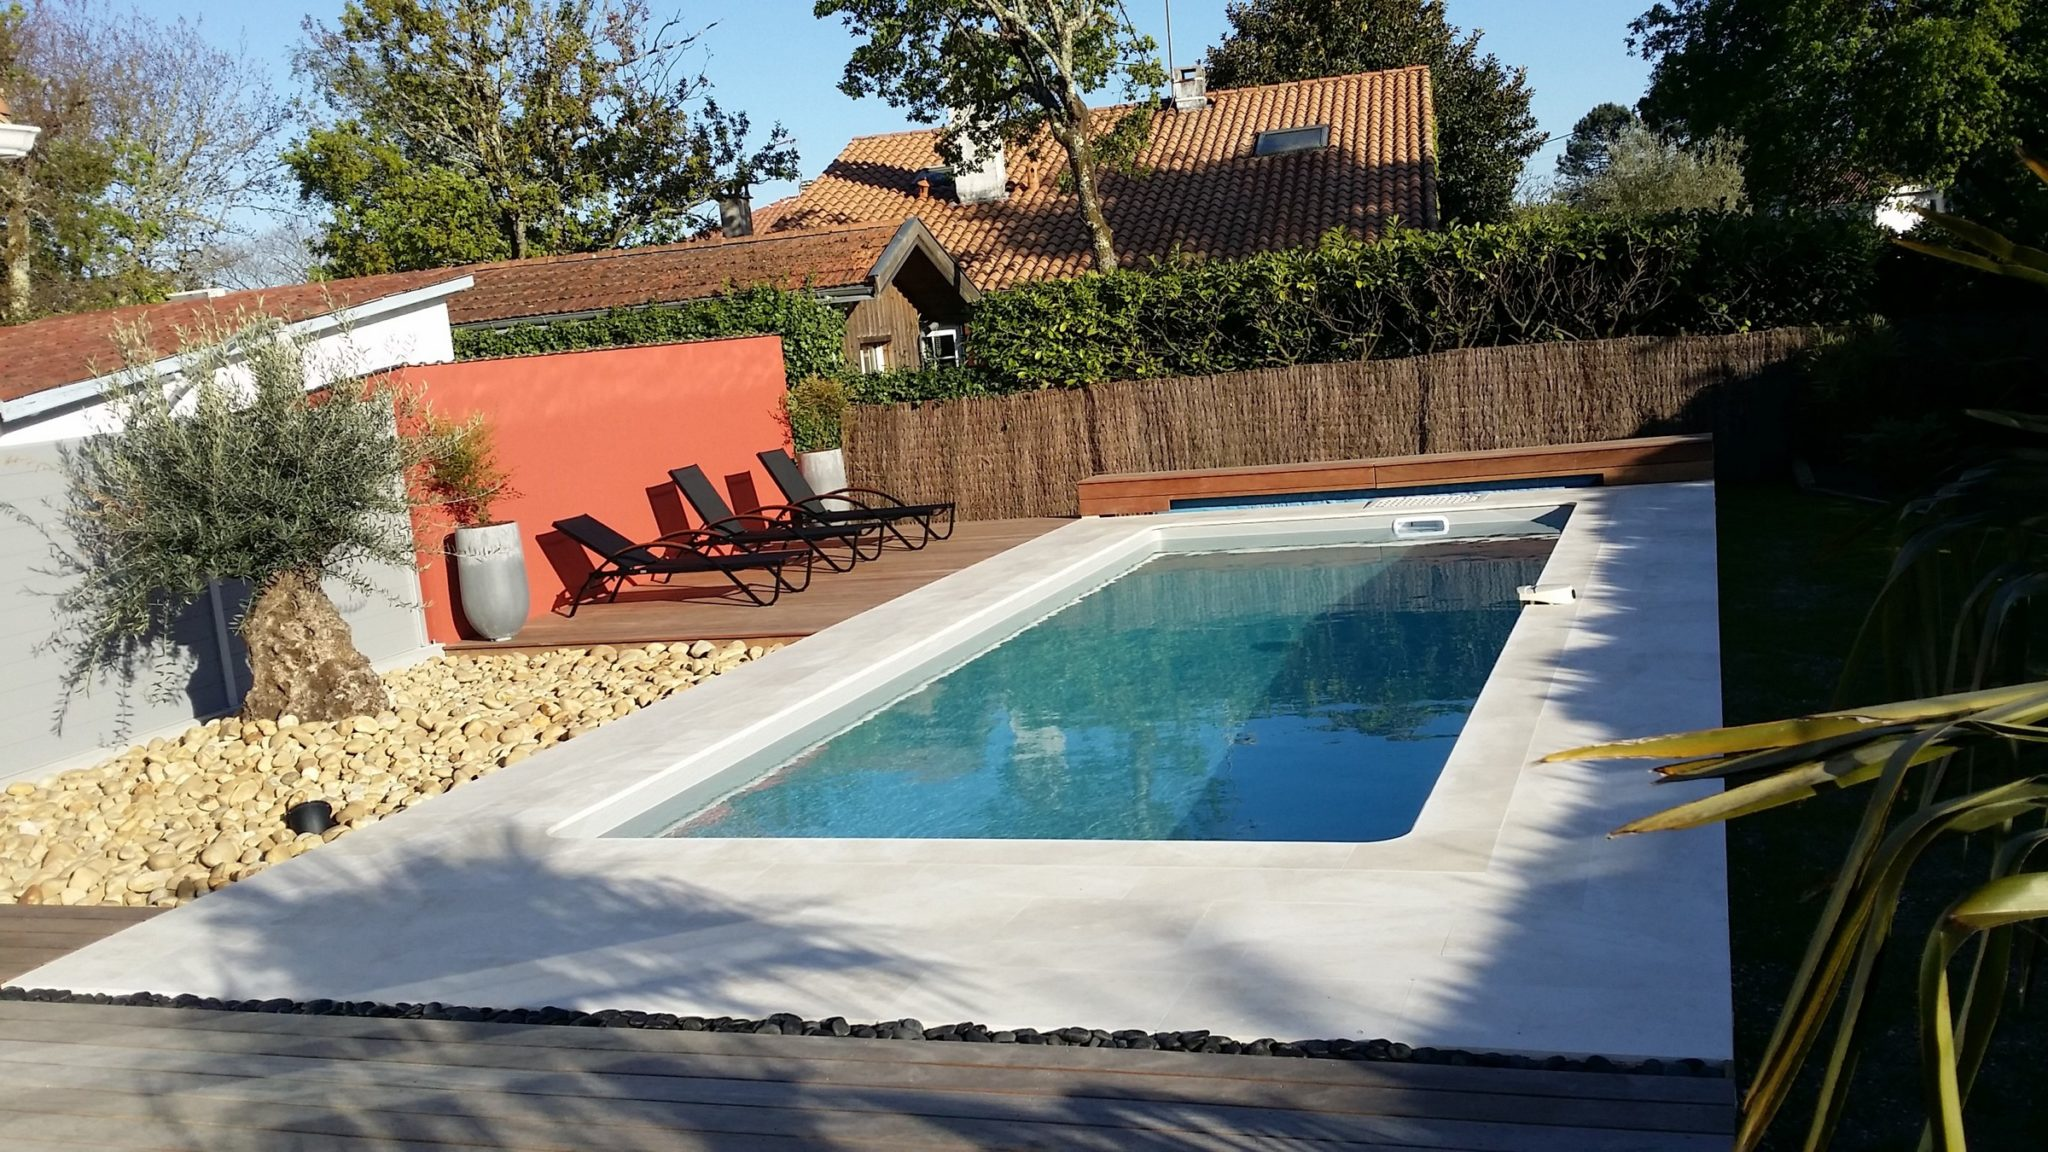 Piscine avec bloc de filtration reference piscine for Bloc filtration piscine enterre